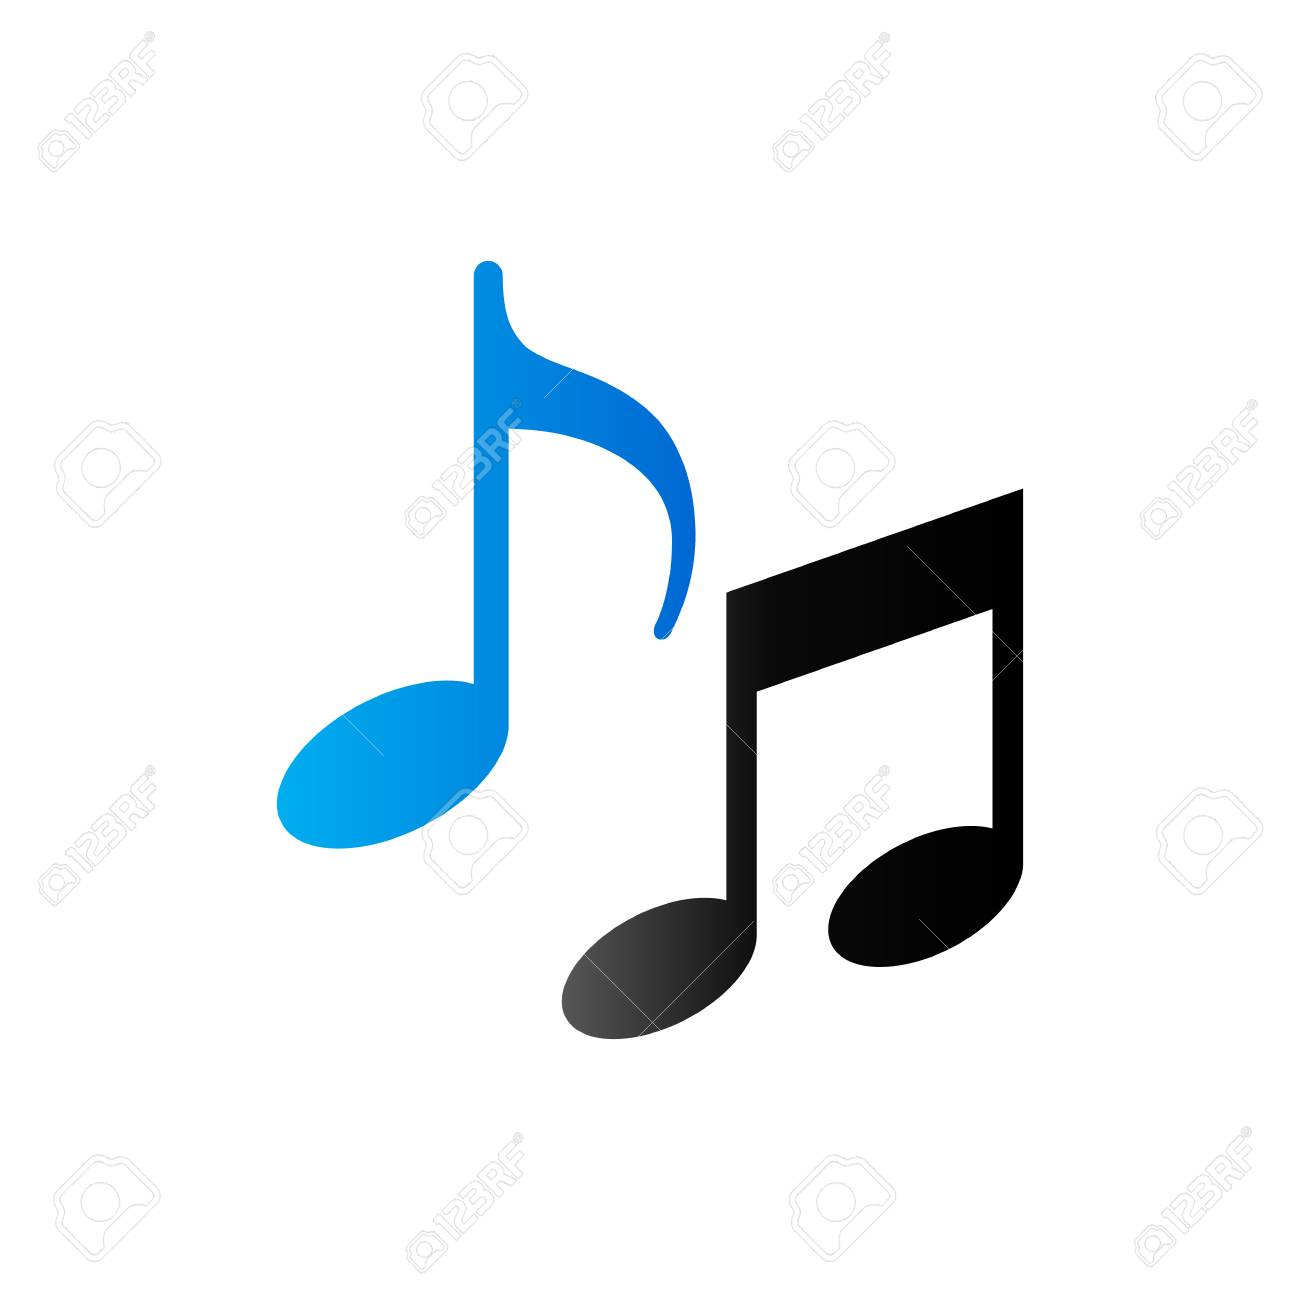 Music notes icon in duo tone color musical crotchets quaver music notes icon in duo tone color musical crotchets quaver stock vector 71633337 buycottarizona